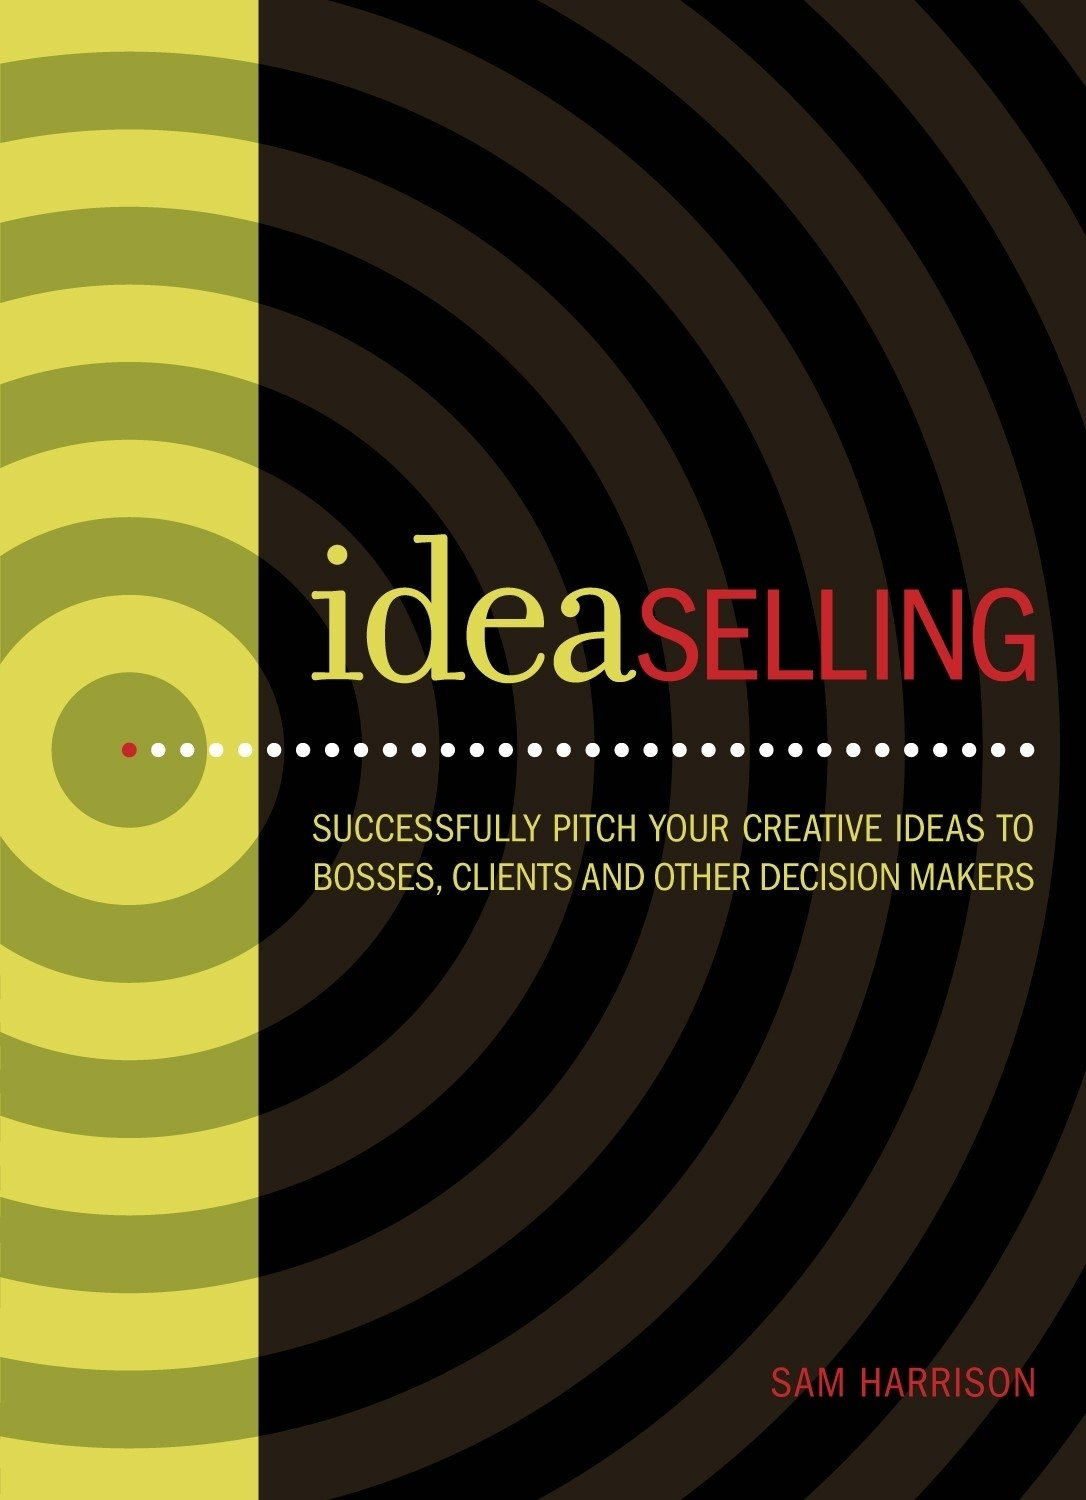 10 Amazing How To Sell A Book Idea ideaselling ebook how to pitch your creative ideas my design shop 2020